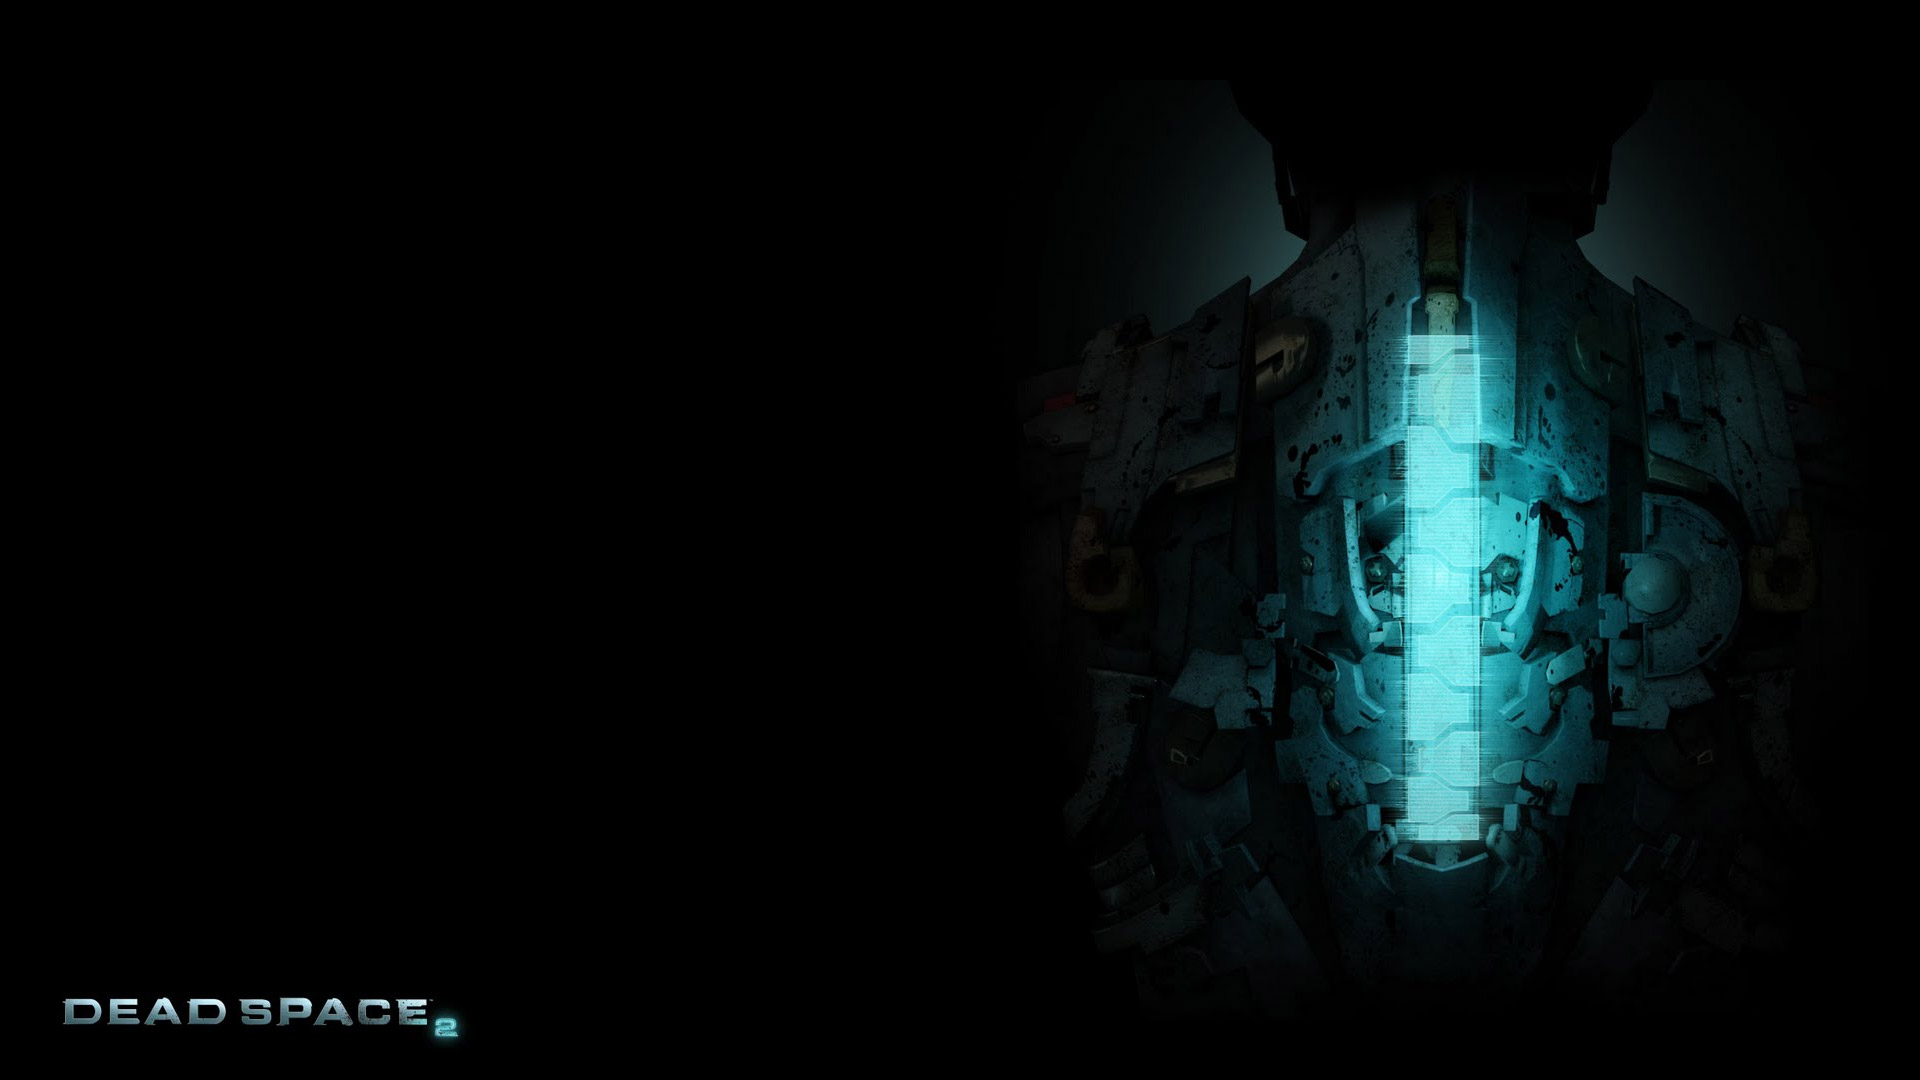 Free Dead Space 2 1080p Wallpaper Dead Space 2 720p